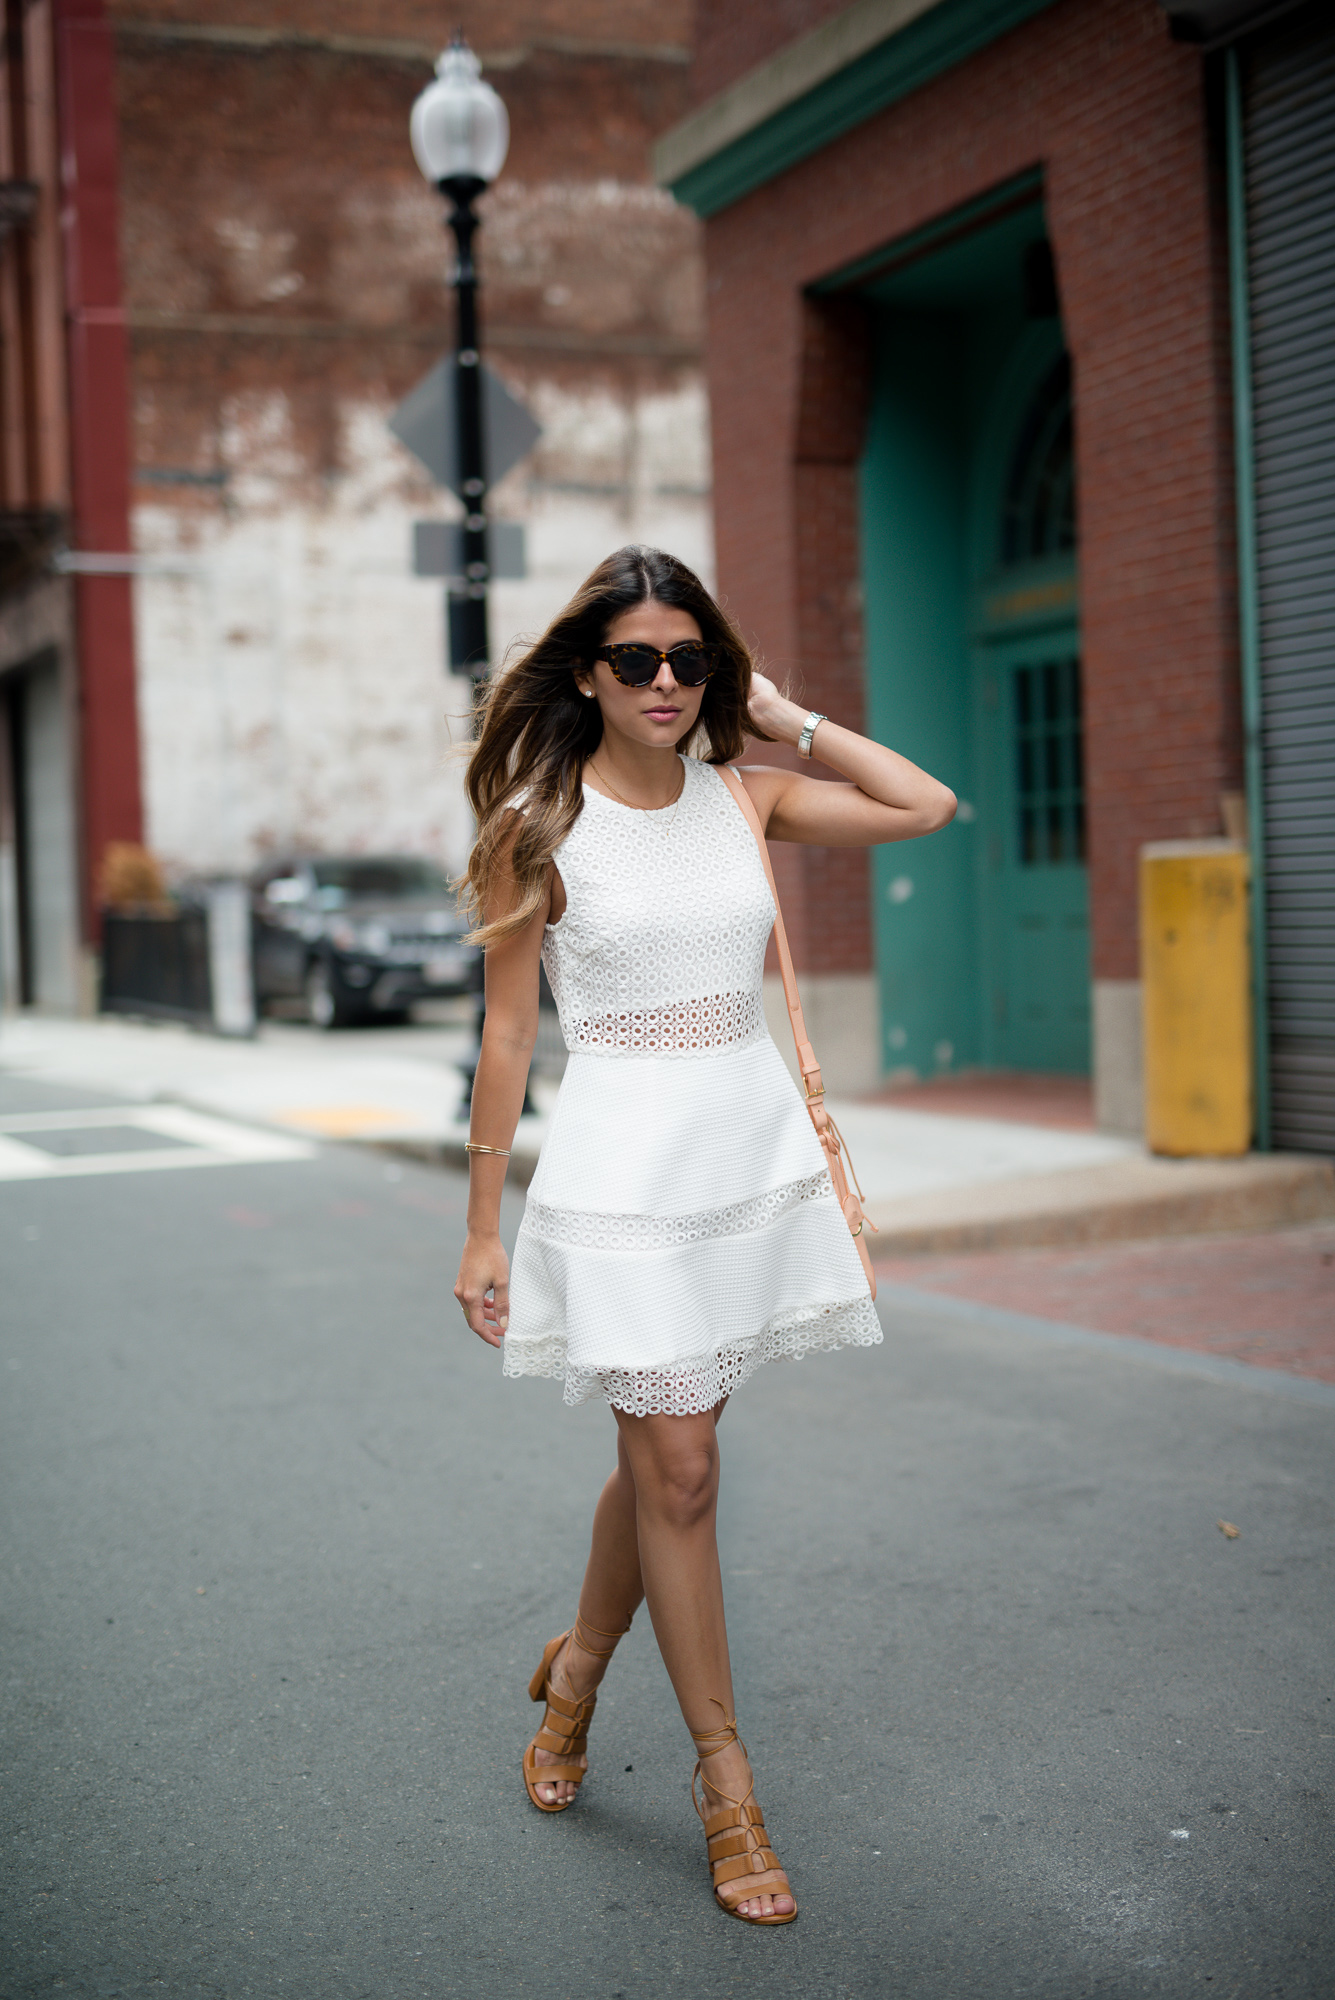 504a17084452 Cute Casual Summer Outfits  This Is What You Should Wear - Just The ...